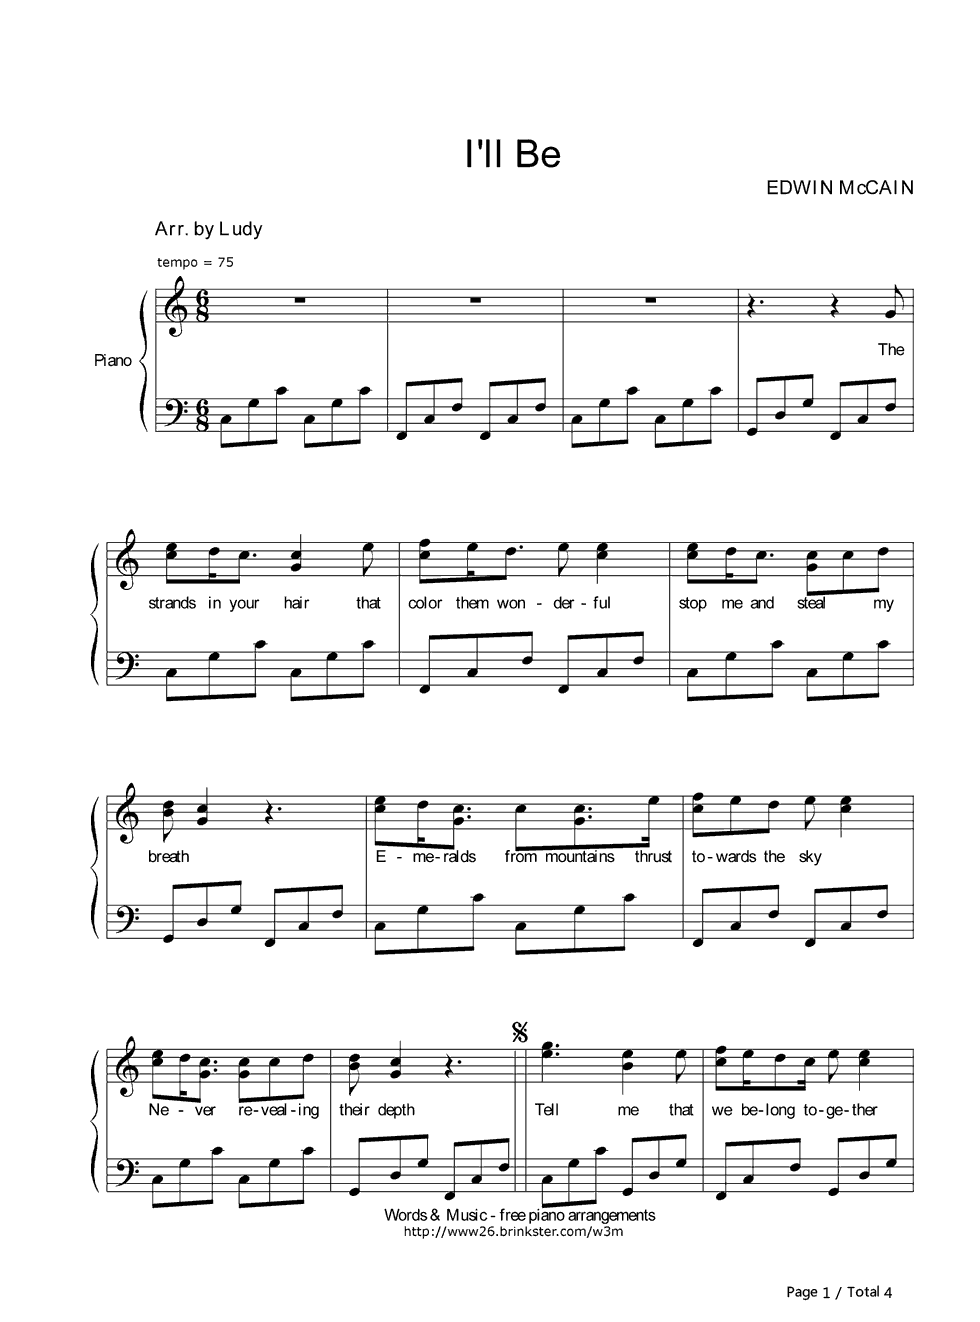 i ll be piano sheet music - Heart.impulsar.co